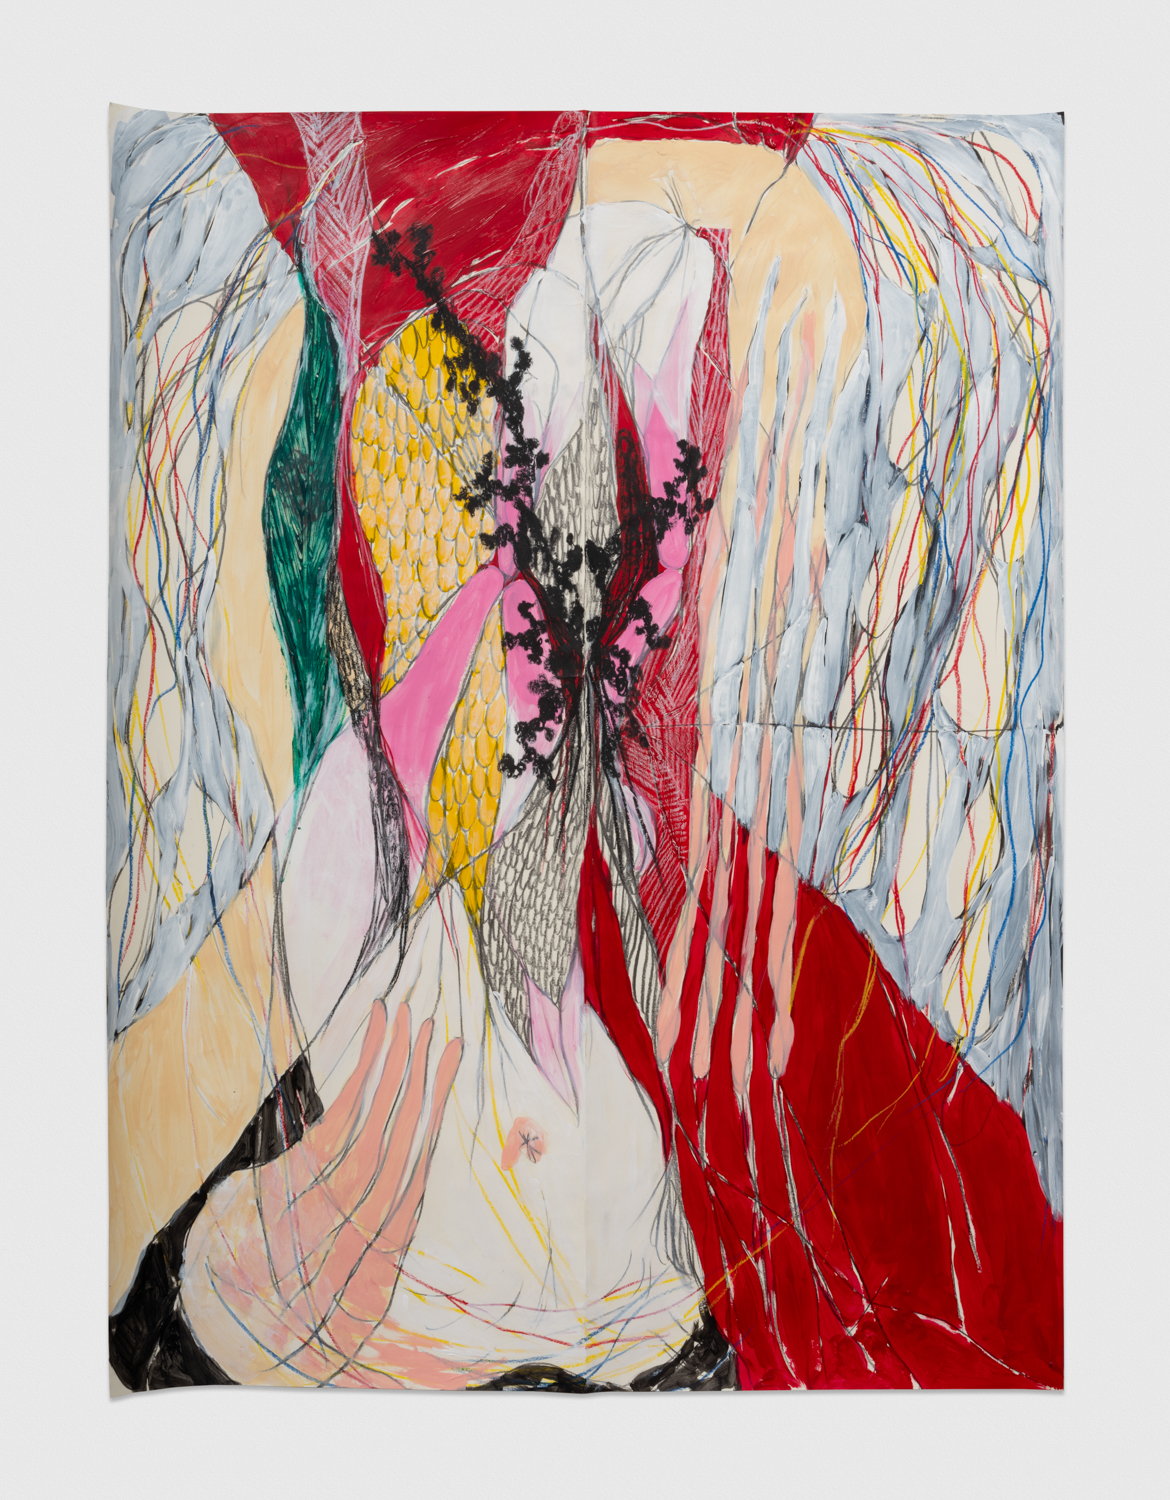 NaotakaHiro Untitled (Wire), 2018 Acrylic, graphite and grease pencil on paper 42h x 32w in NaoH017